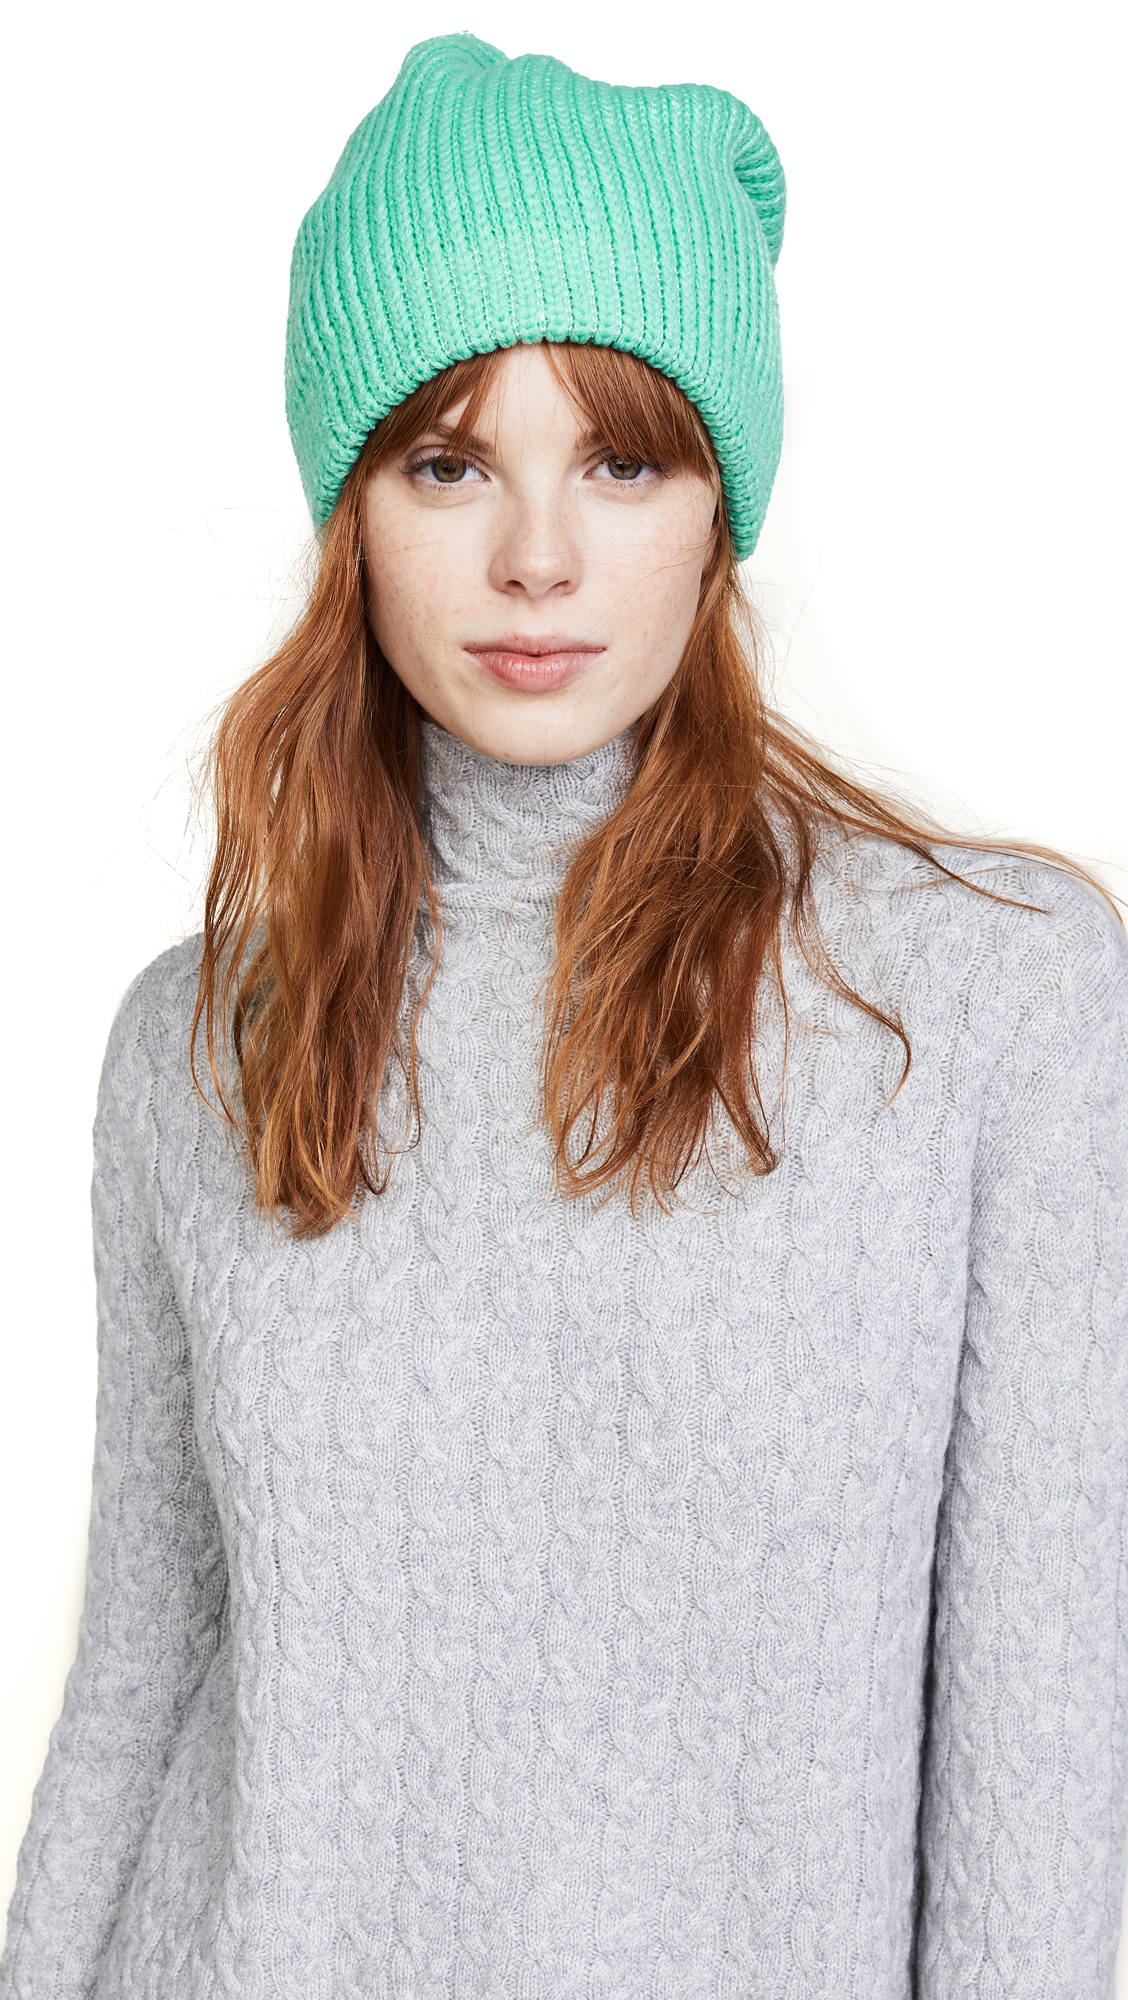 Free People All Day Everyday Slouchy Beanie Hat - Turquoise